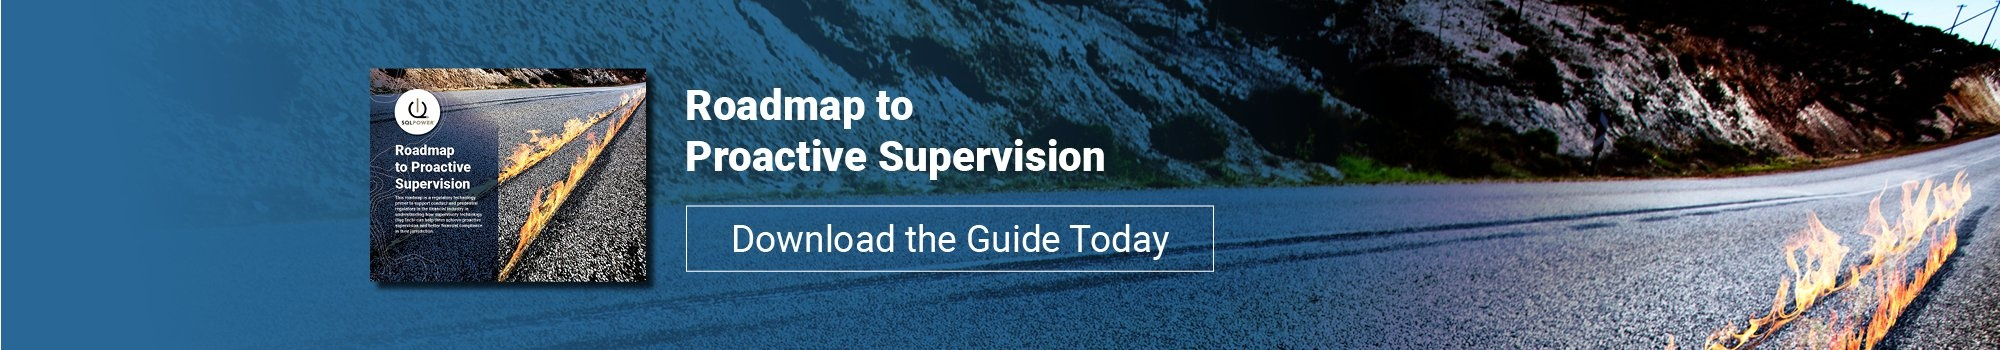 Roadmap to Proactive Supervision Download Offer